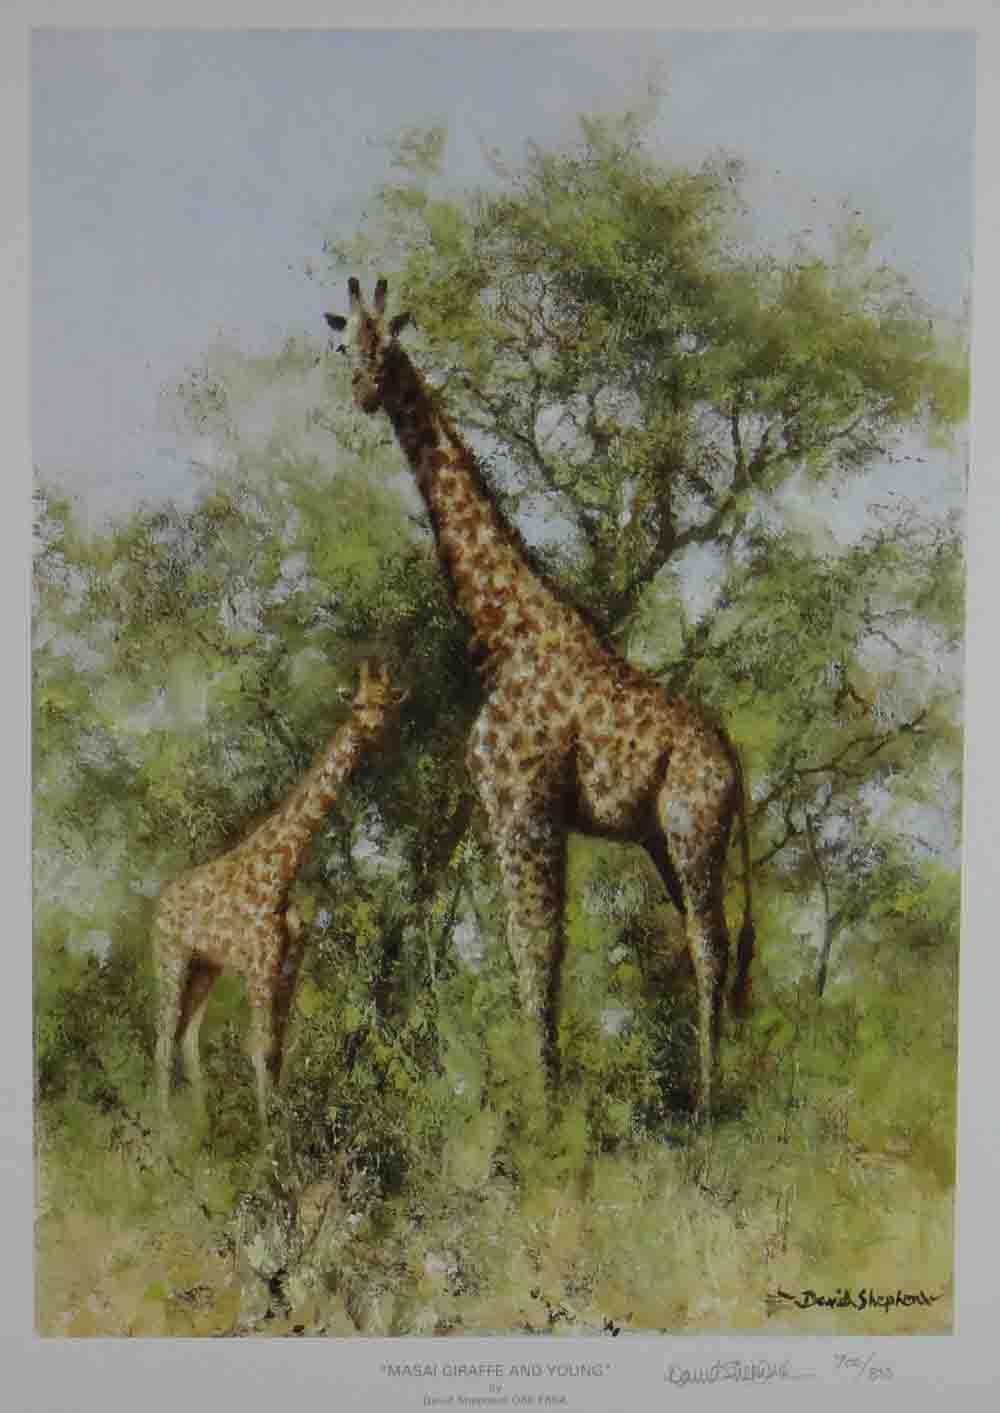 david shepherd, Masai Giraffe and Young, print